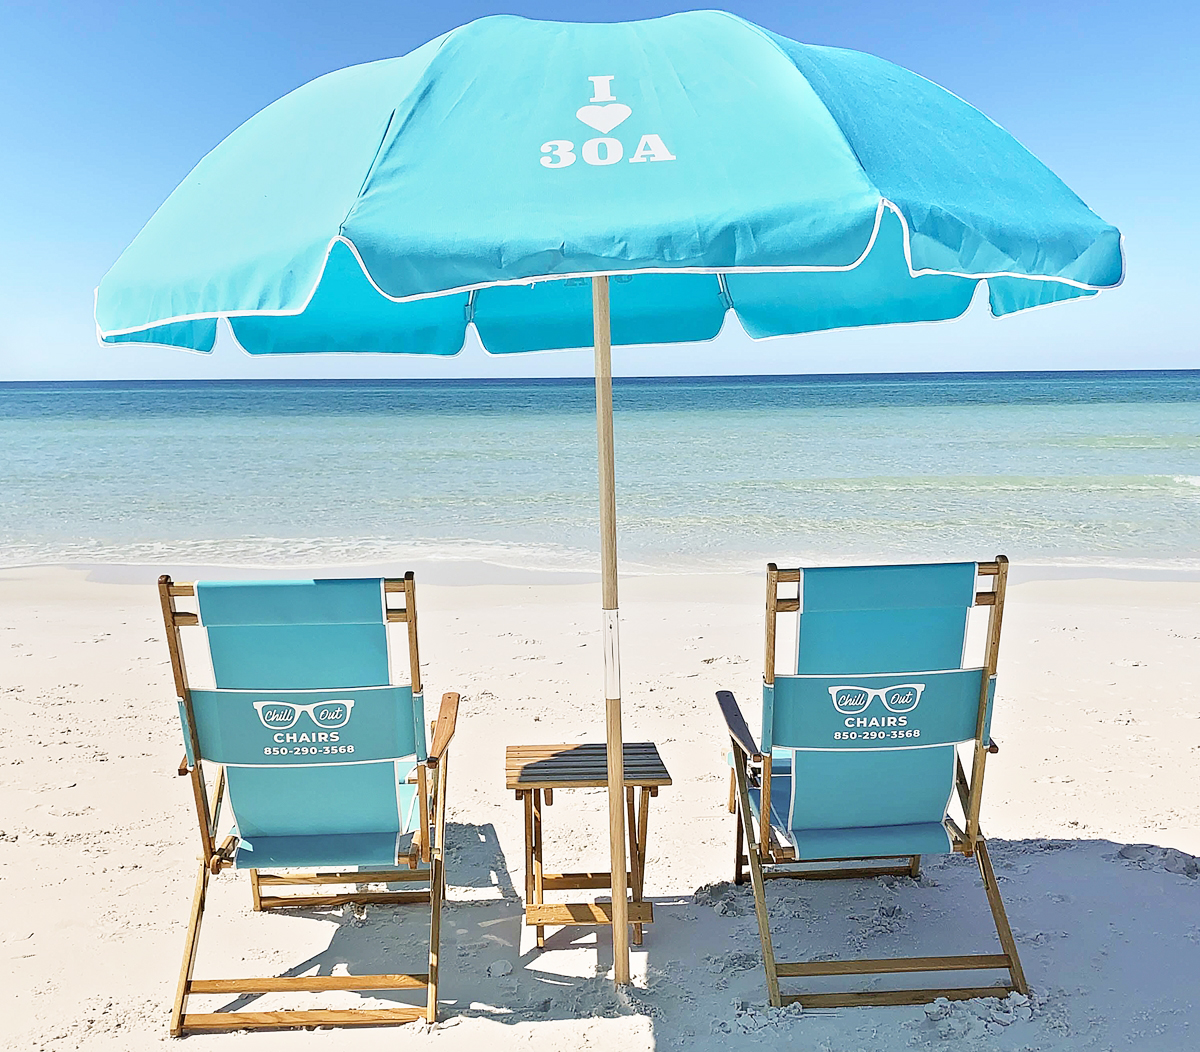 30A Beach Chair Rentals